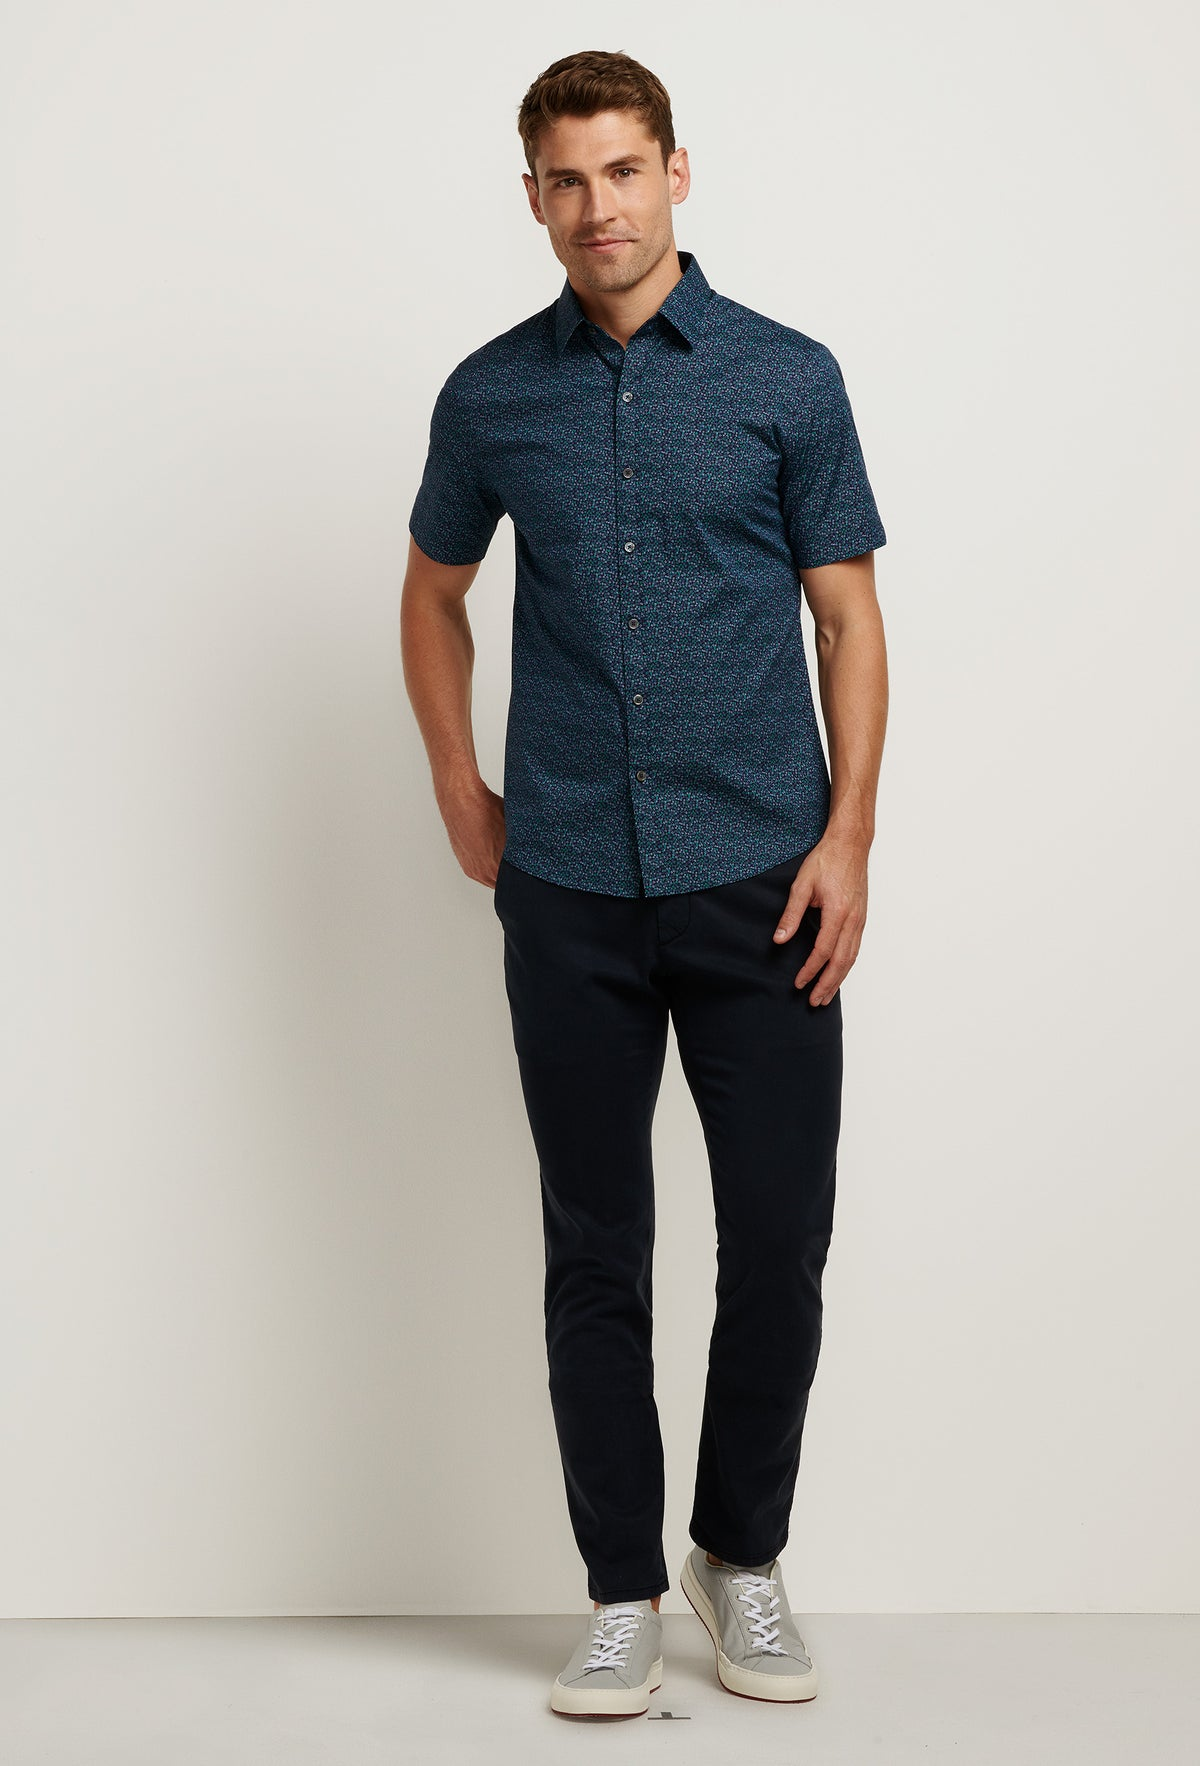 ZACHARY-PRELL-Siddiqui-ShirtsModern-Menswear-New-Dress-Code